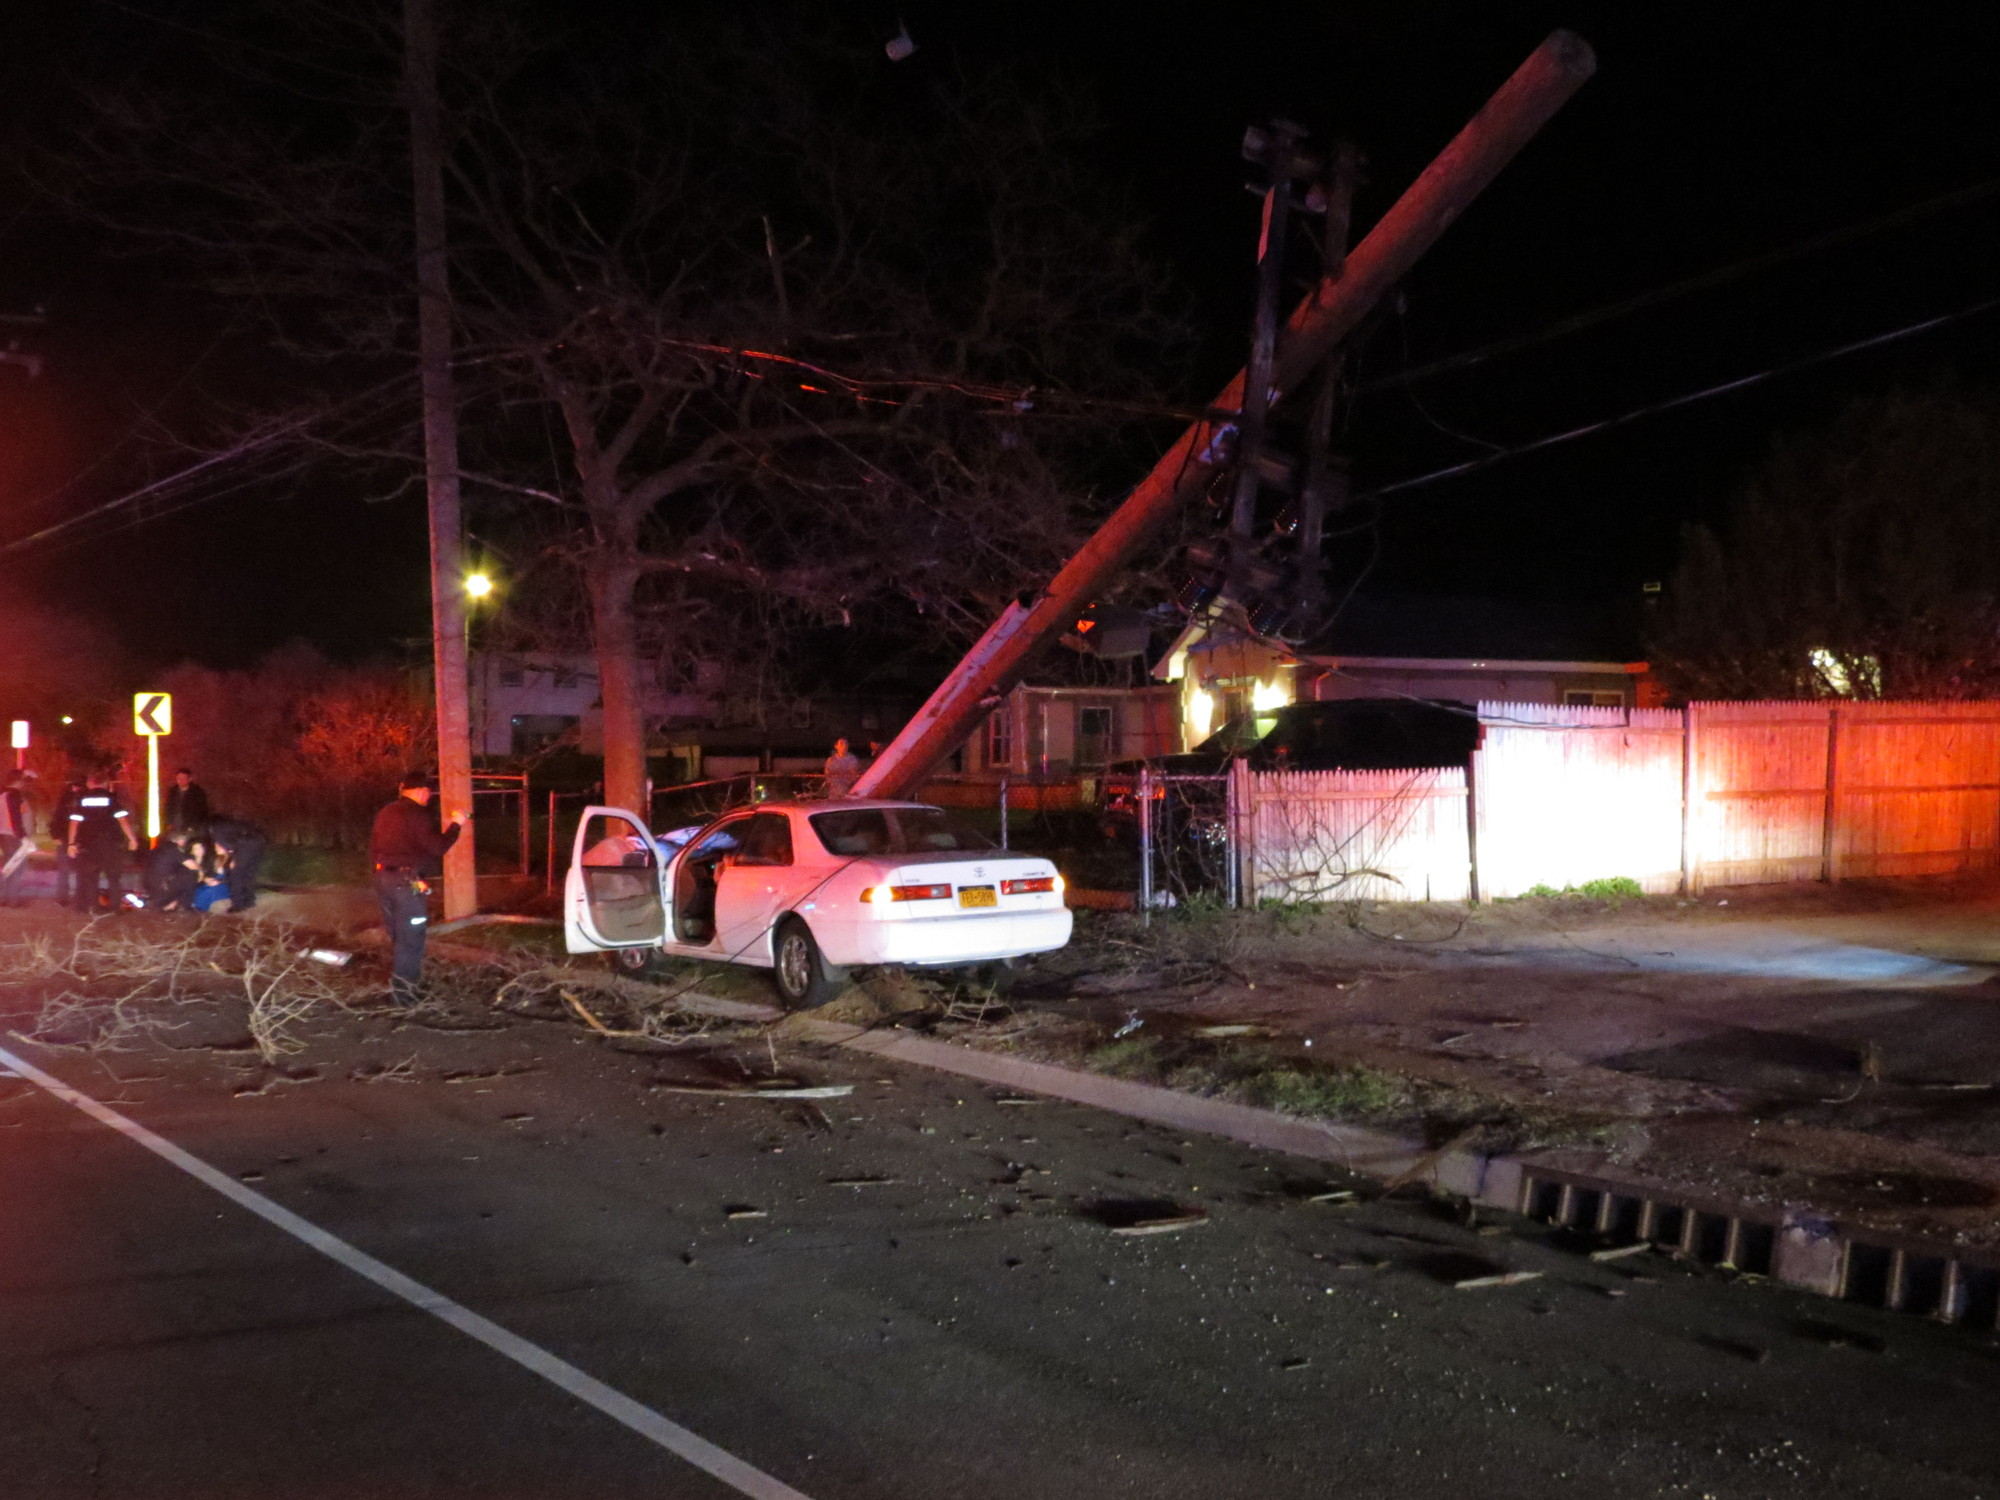 Police said a women heading east on Park Avenue near Maple Boulevard was injured when she crashed into a light pole and tree early Sunday morning. She was arrested and charged with DWI.